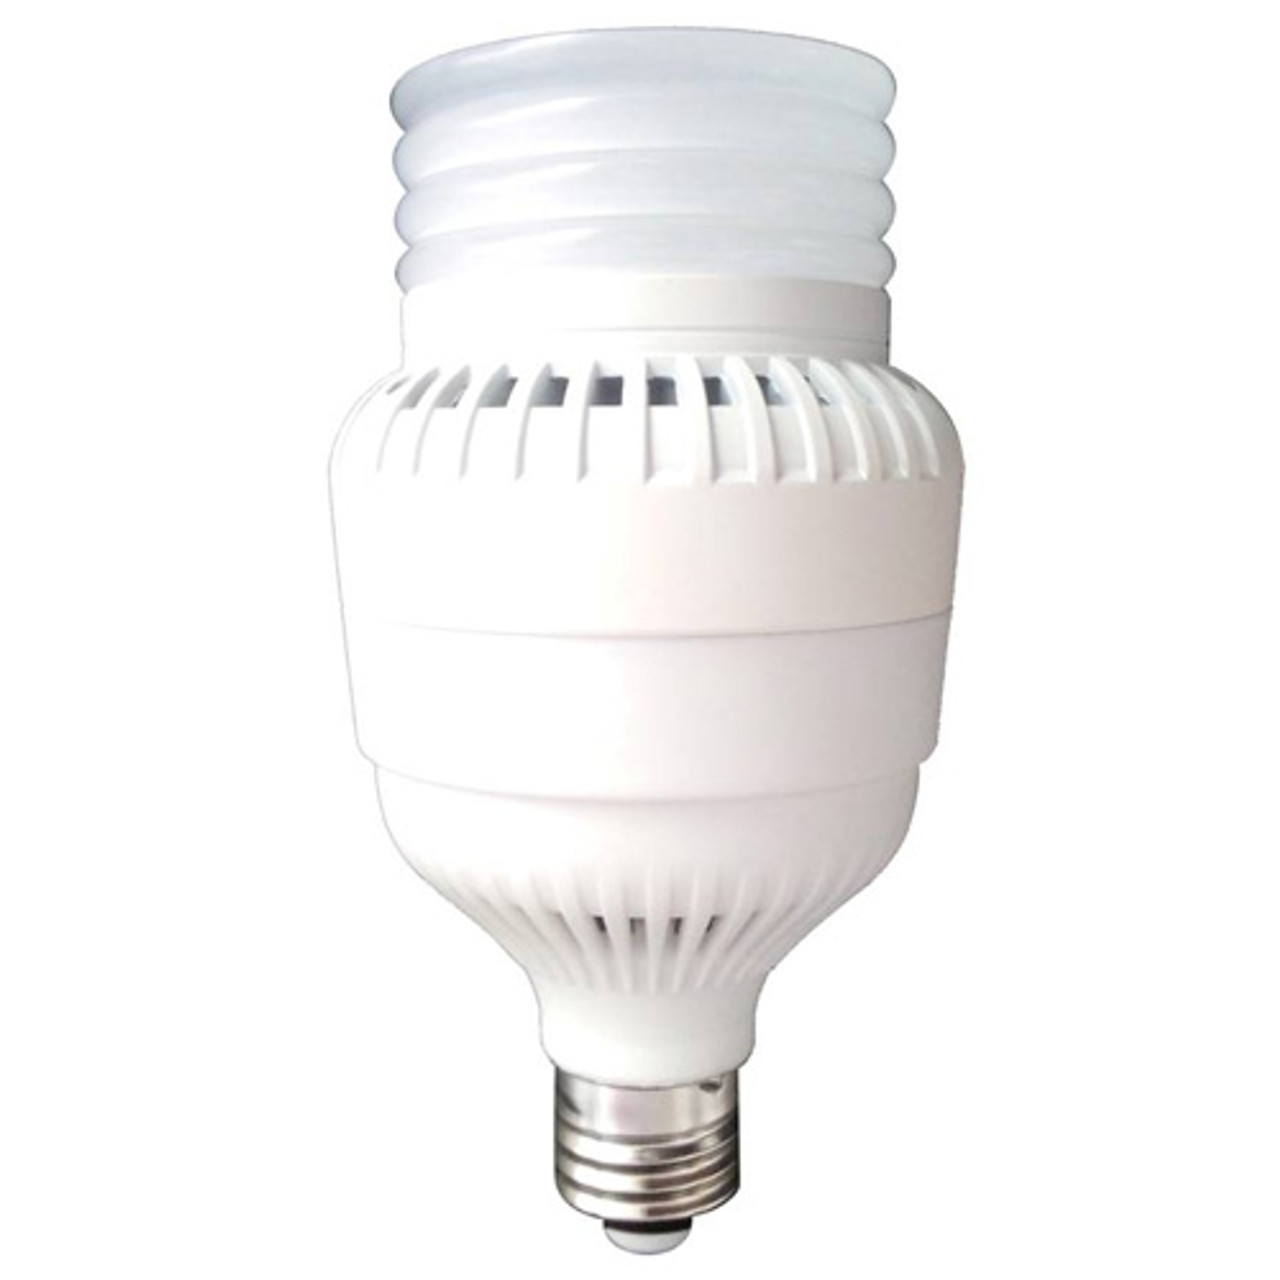 30w LED Light Bulb